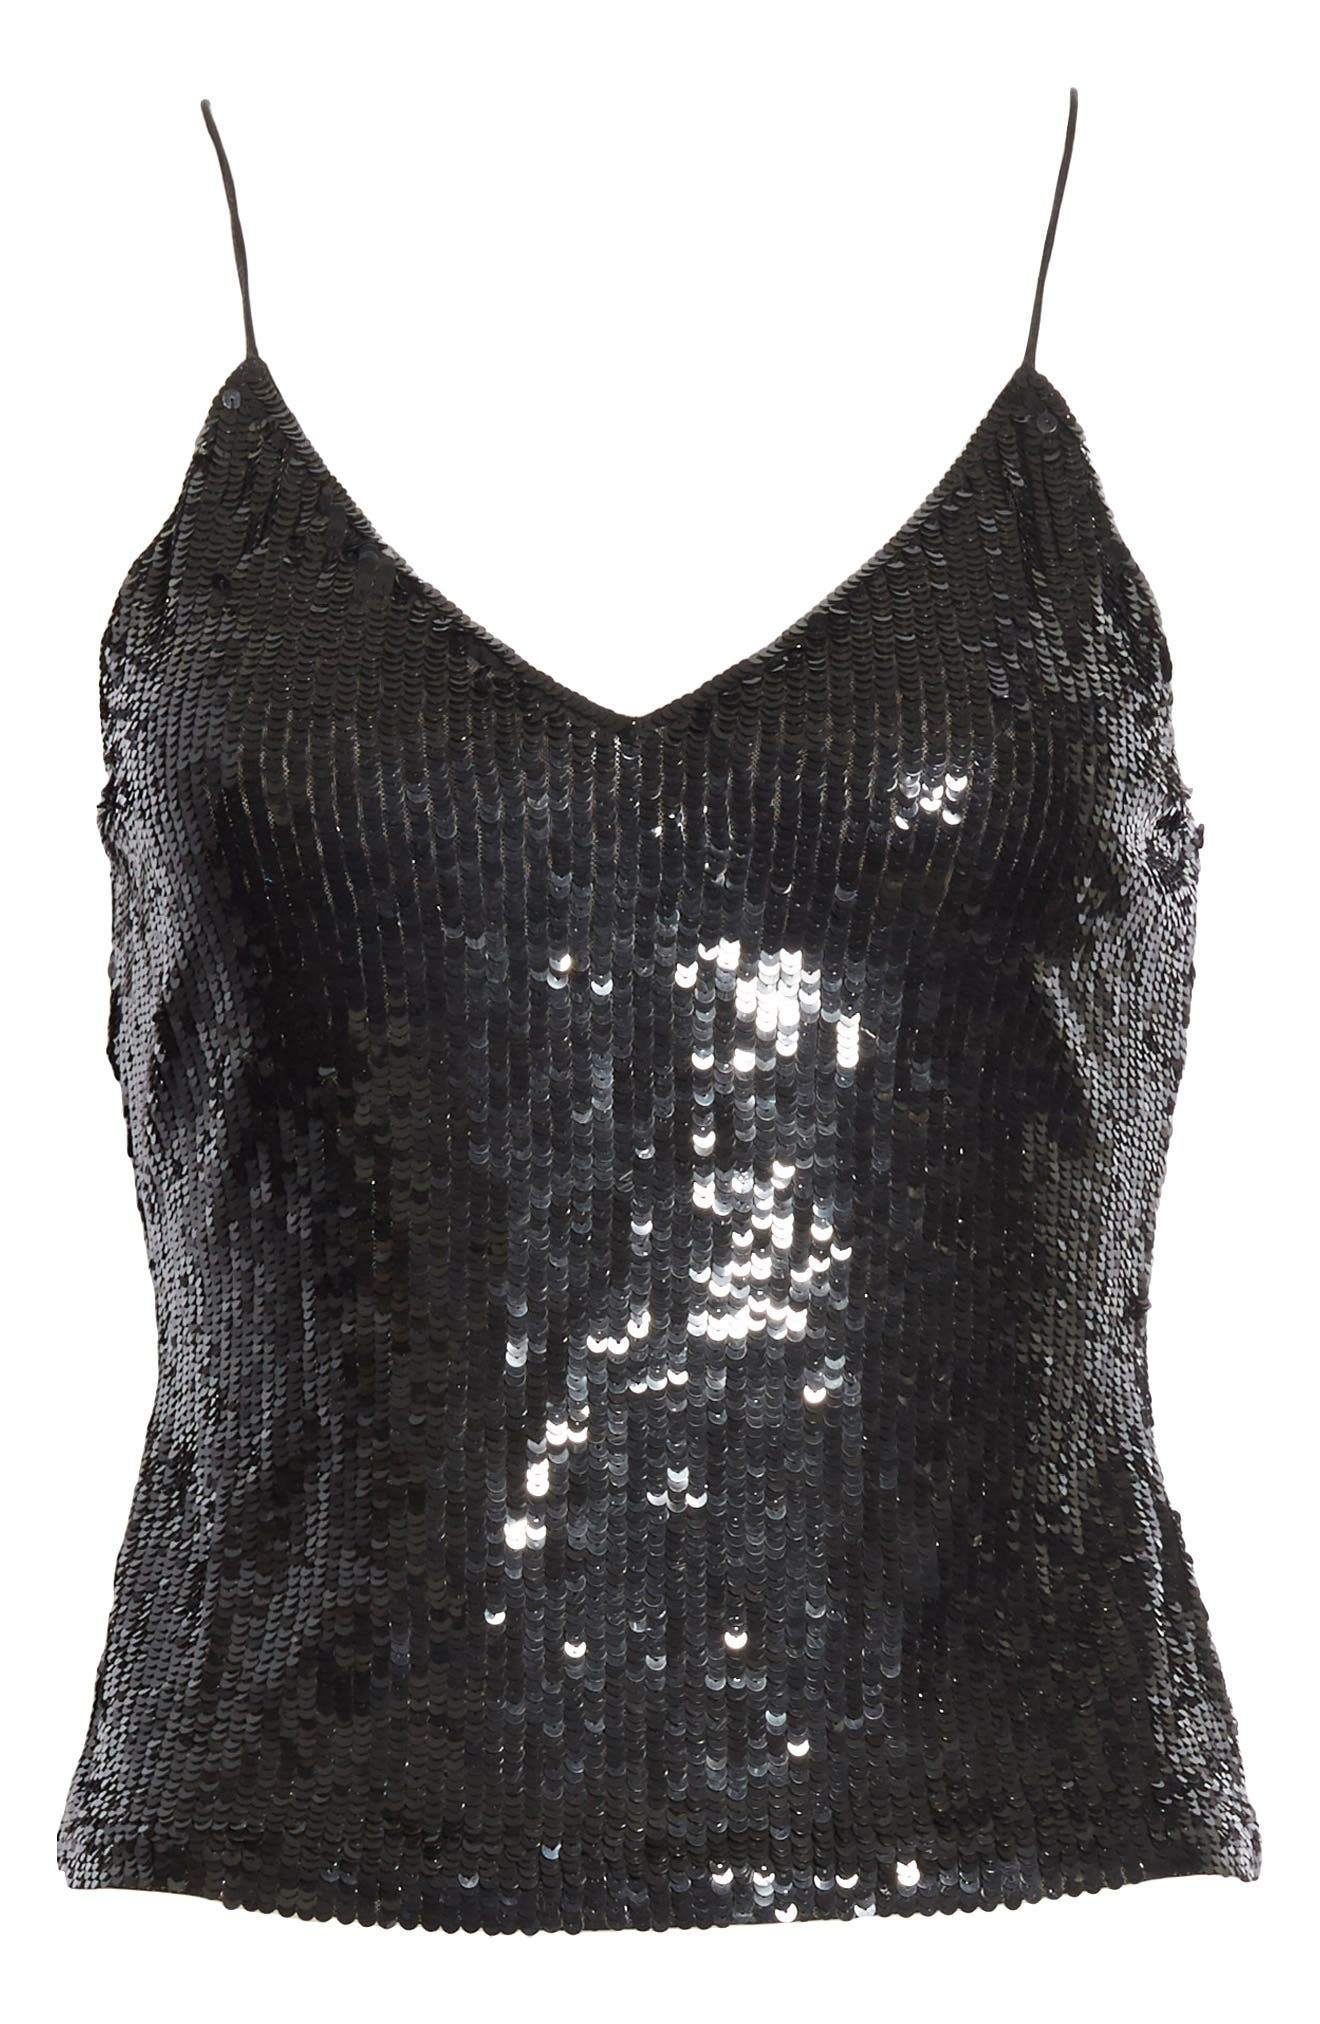 Delray Sequin Camisole,                             Alternate thumbnail 6, color,                             Black